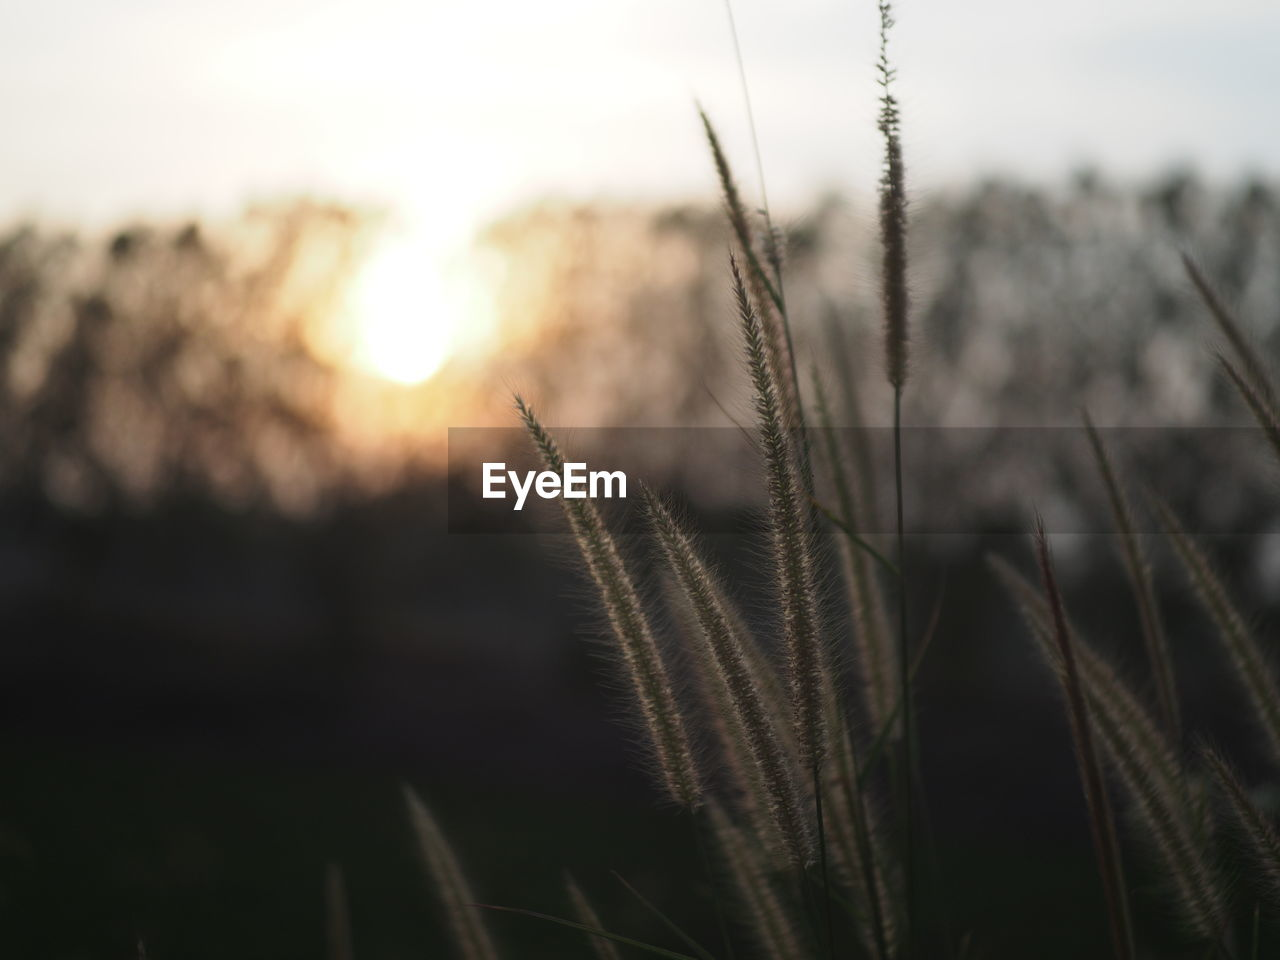 plant, growth, close-up, nature, focus on foreground, beauty in nature, tranquility, sky, no people, sunset, selective focus, outdoors, field, agriculture, day, land, grass, crop, sunlight, stalk, timothy grass